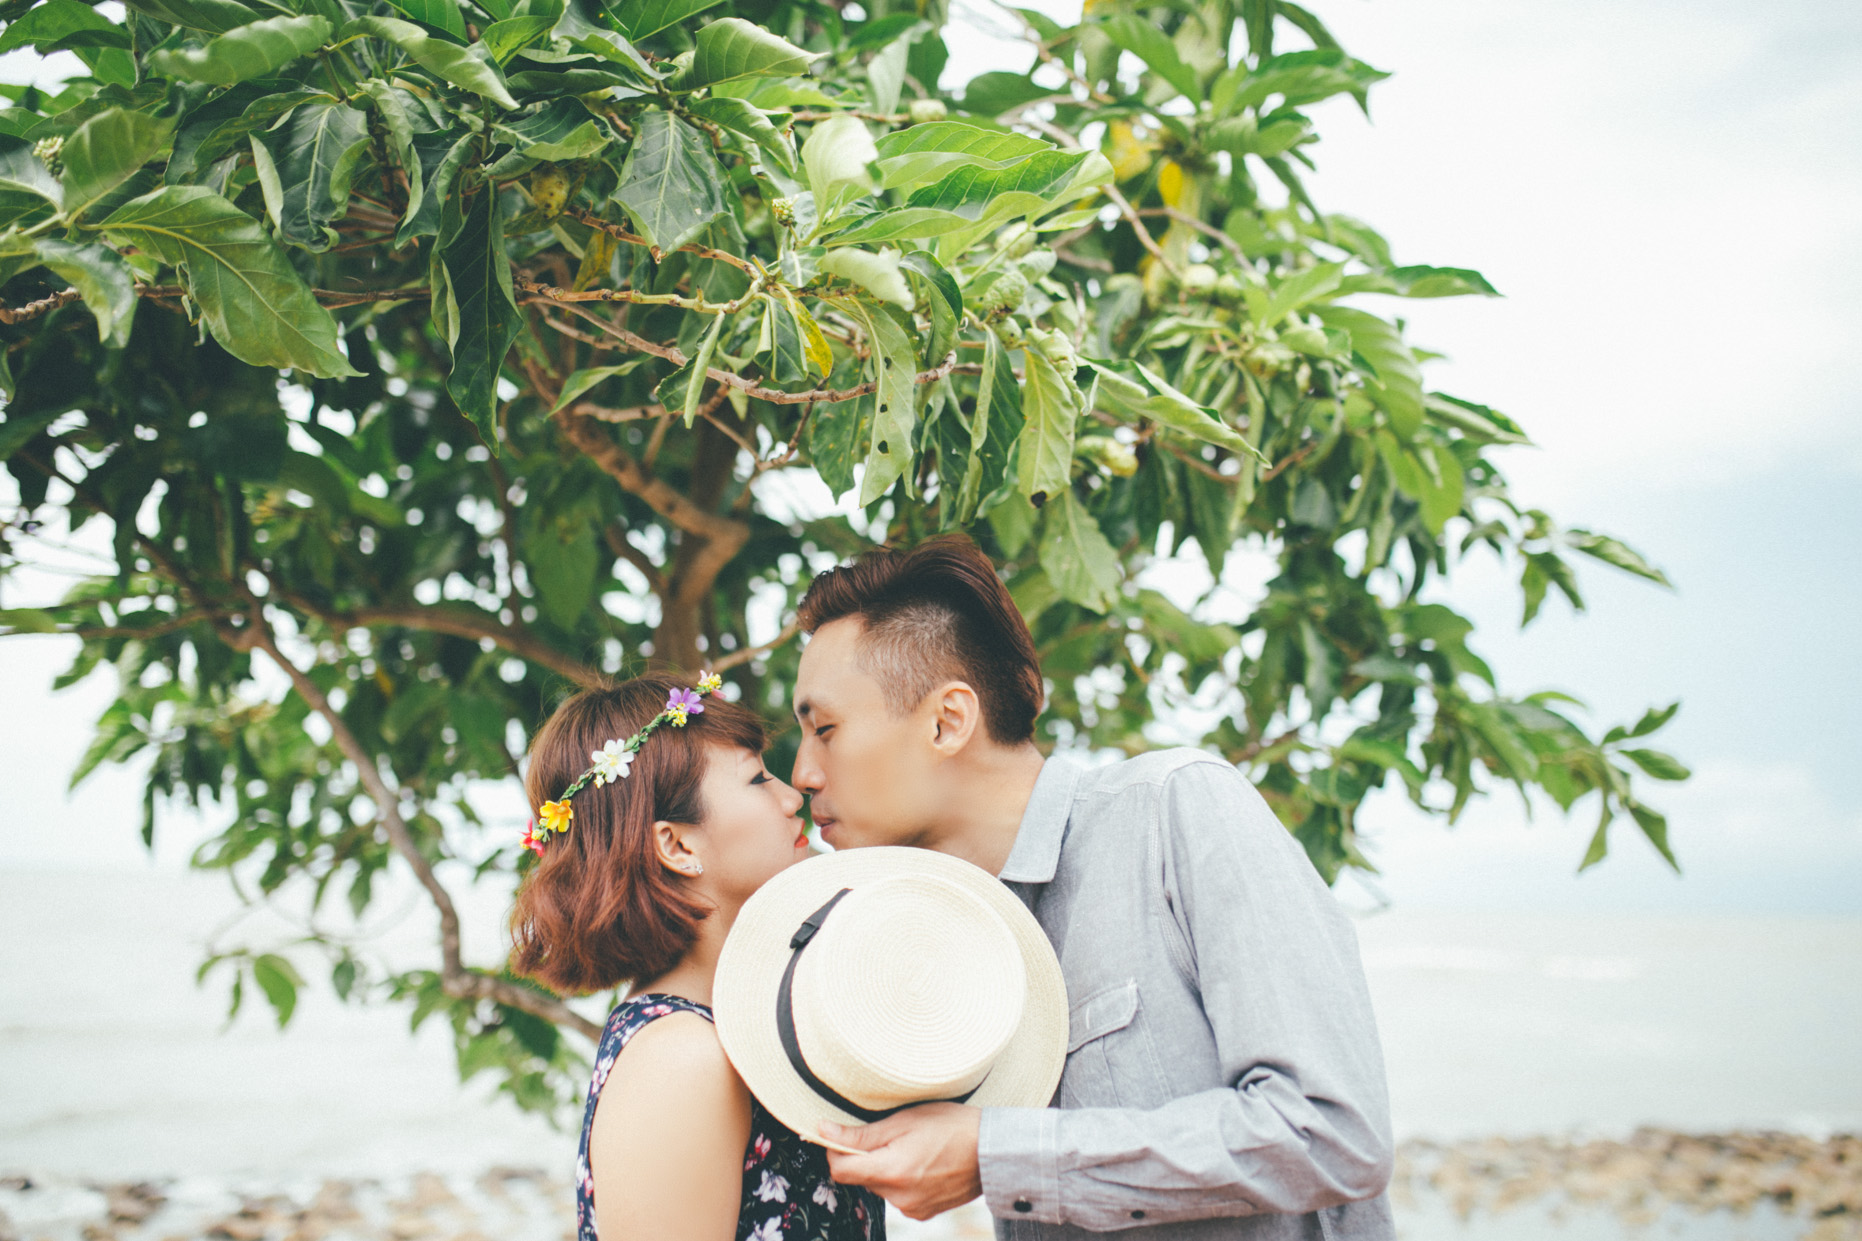 34-hellojanelee-singapore-malaysia-wedding-photographer-prewedding-carrie-sekinchan